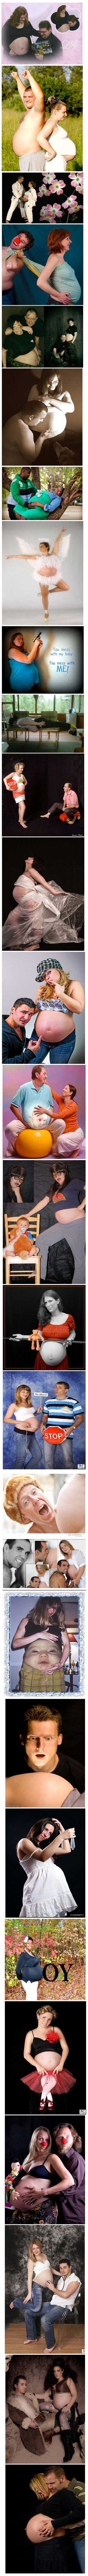 Totally awkward pregnancy photos… this inspires me to do some of these when I'm preggers... just for a laugh.